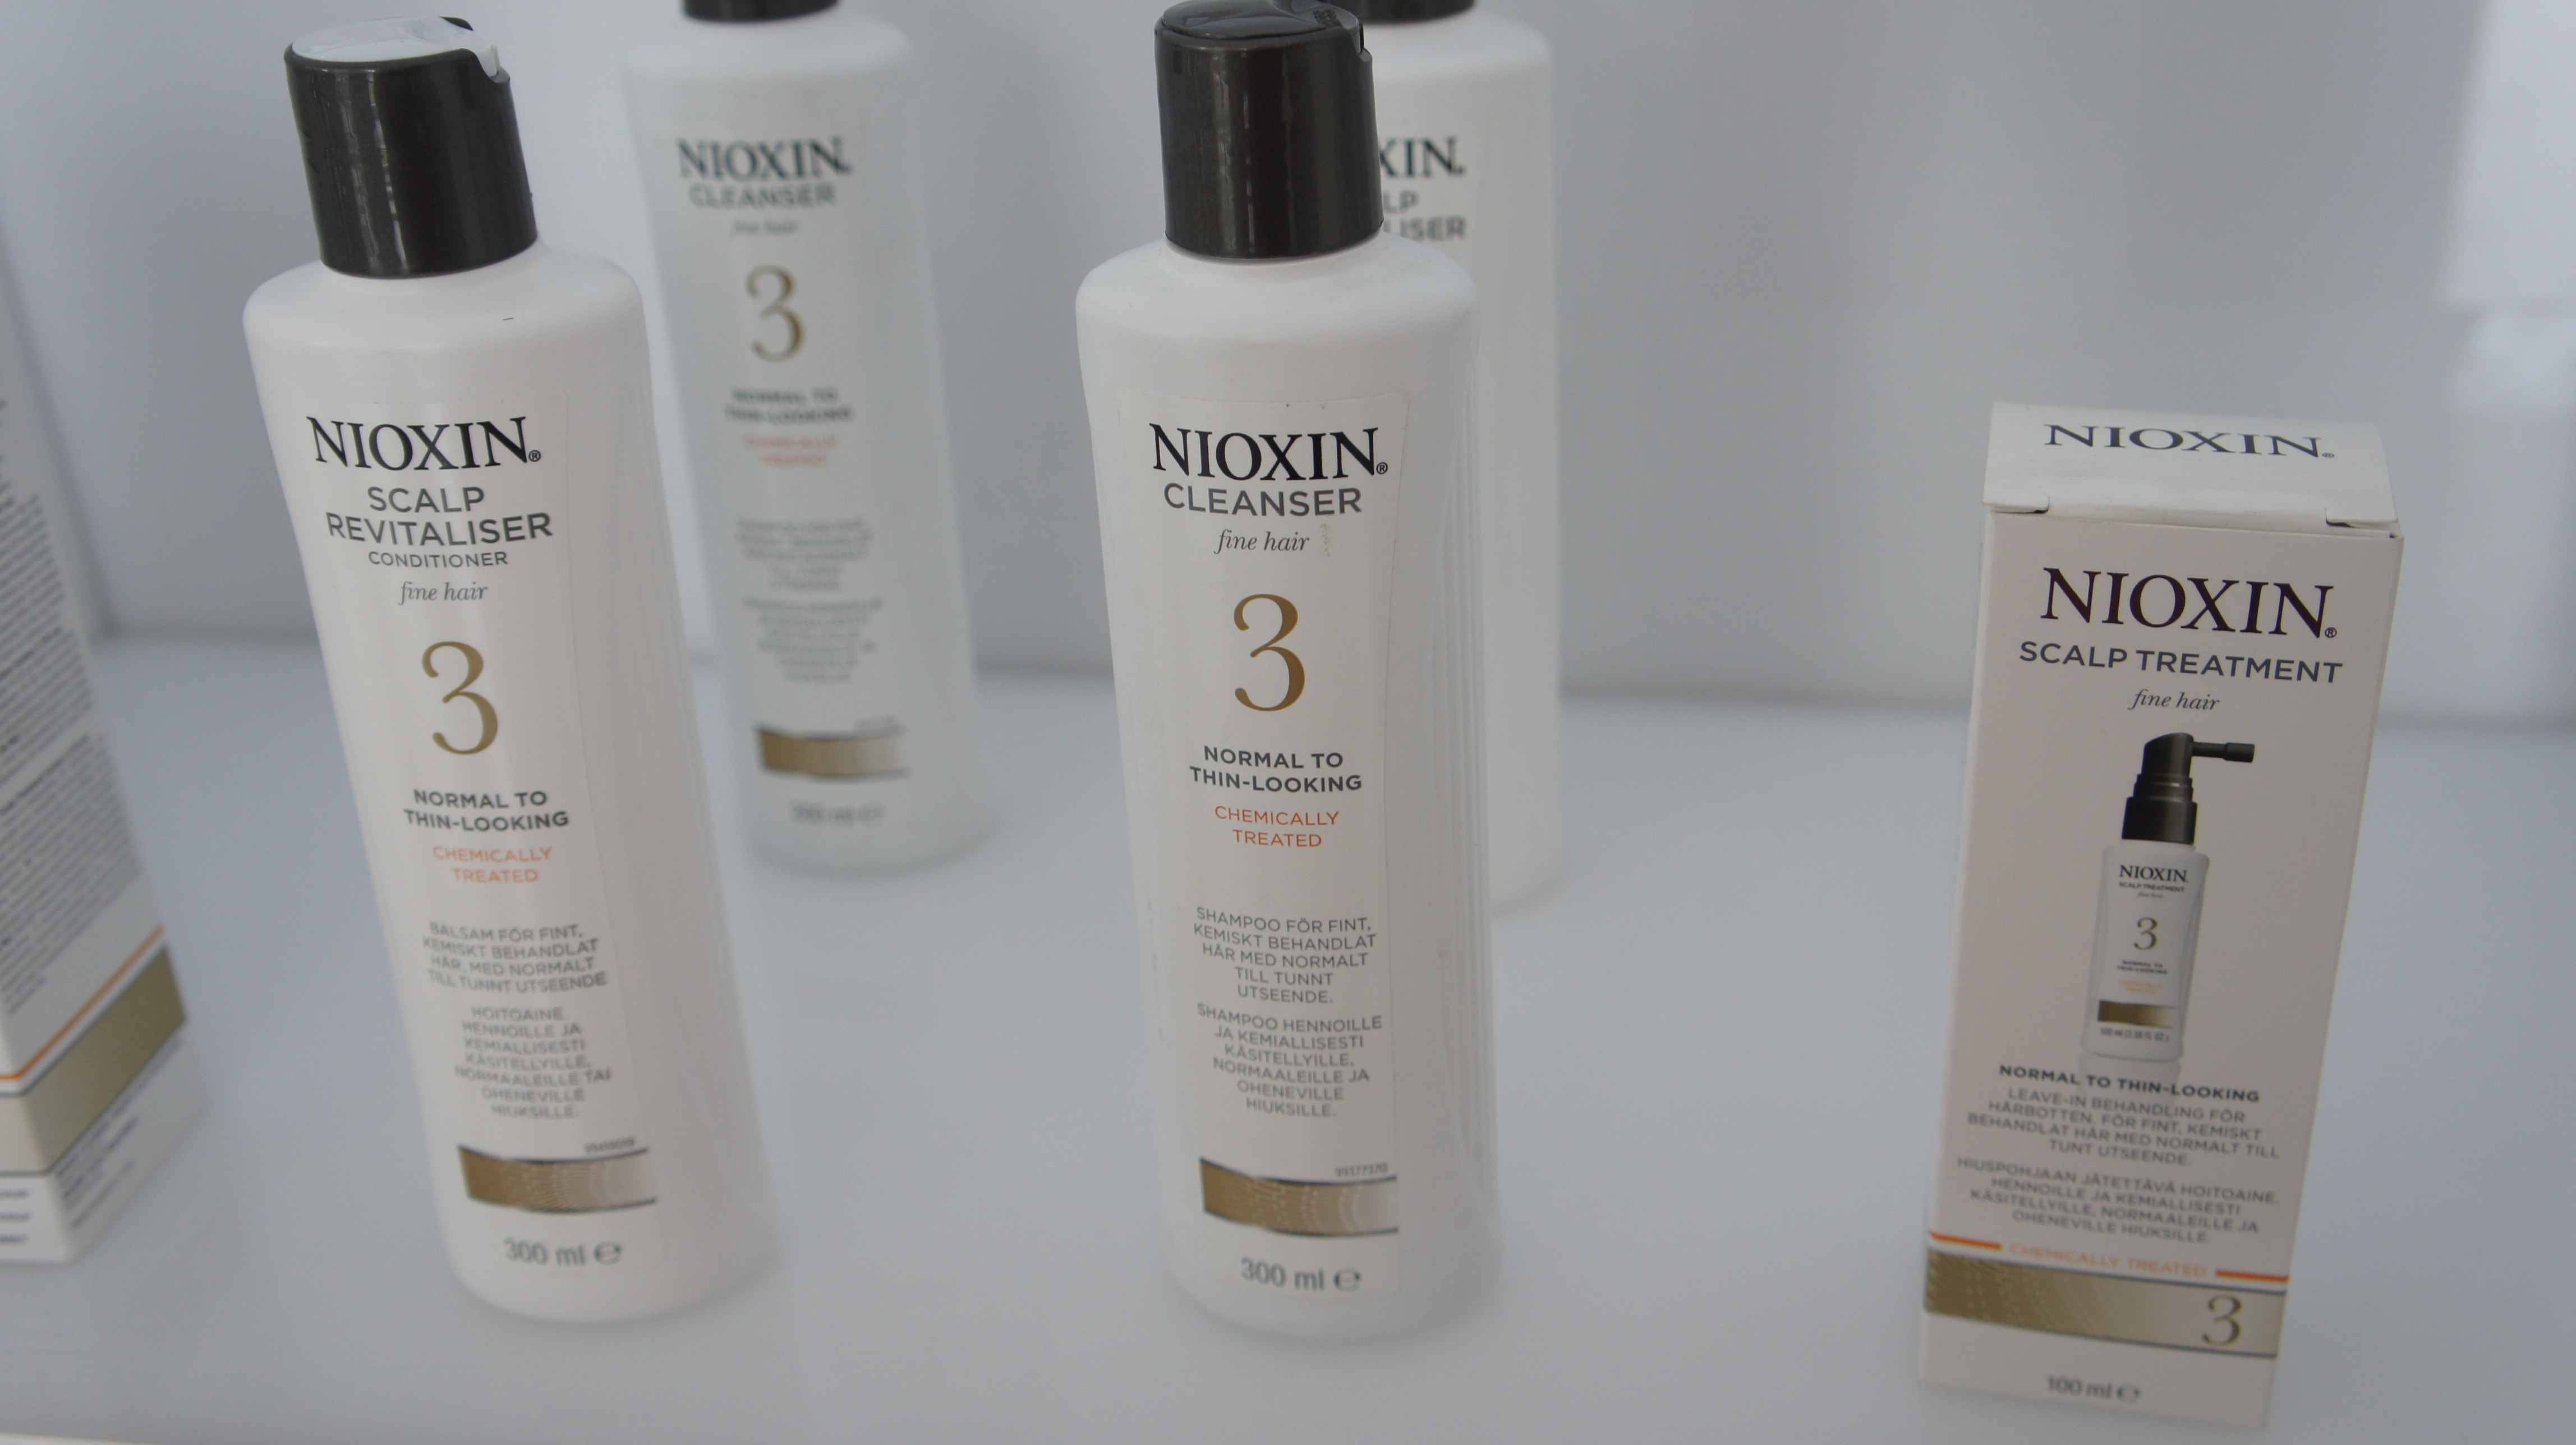 The 3-pronged approach of Nioxin